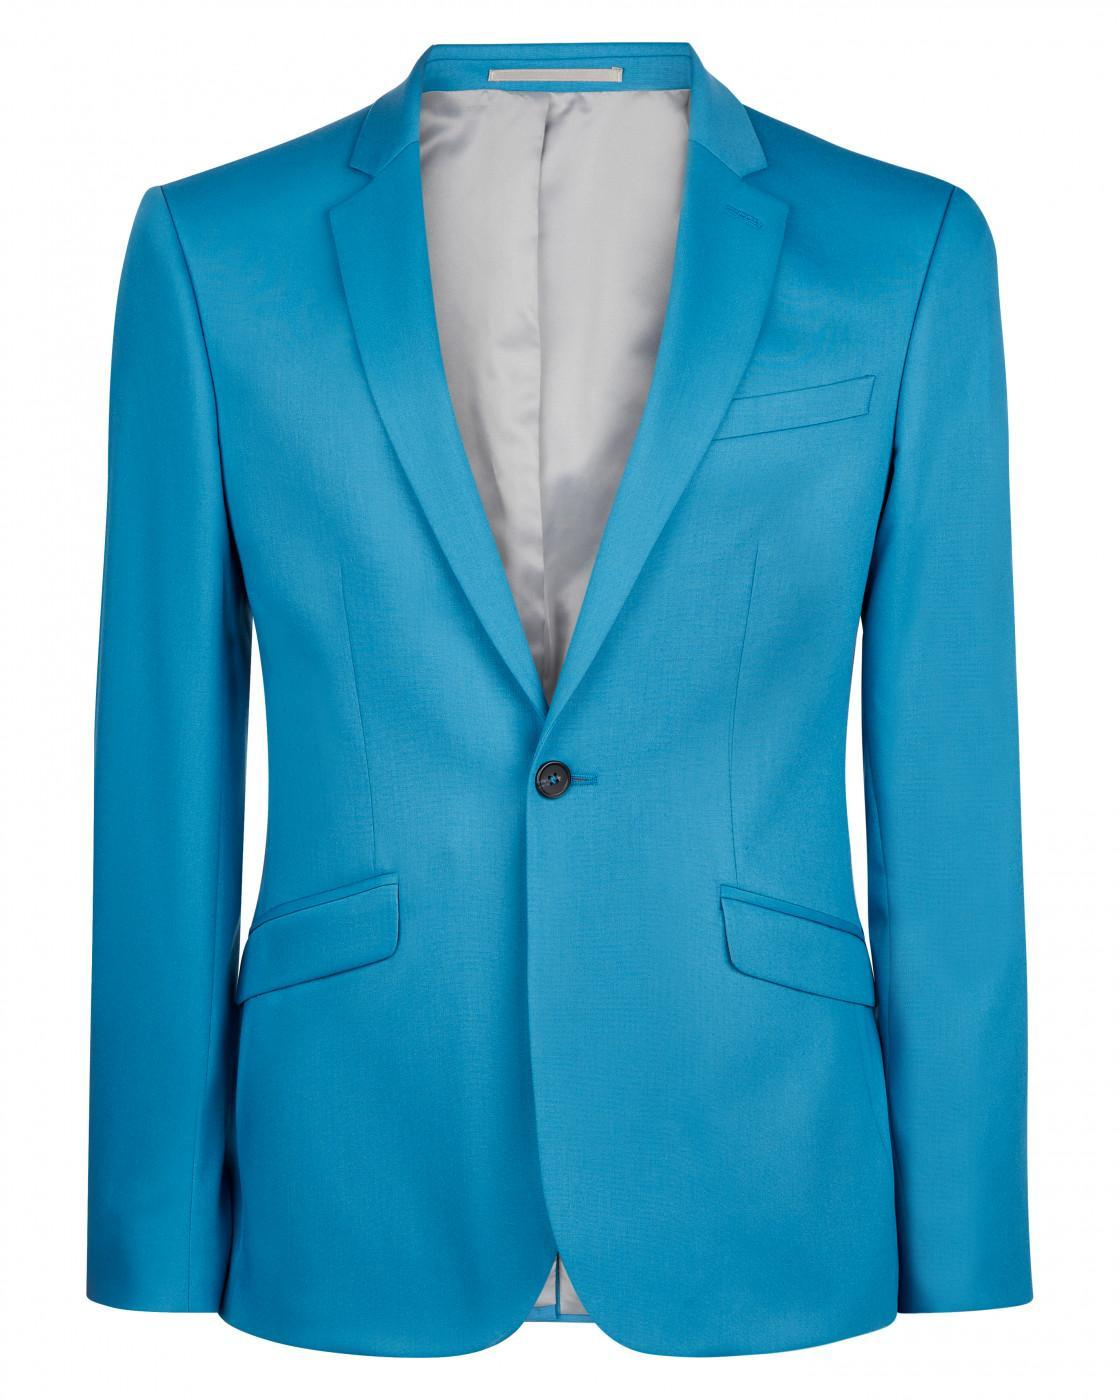 Skinny Teal Suit Jacket By Austin Reed Thread Com